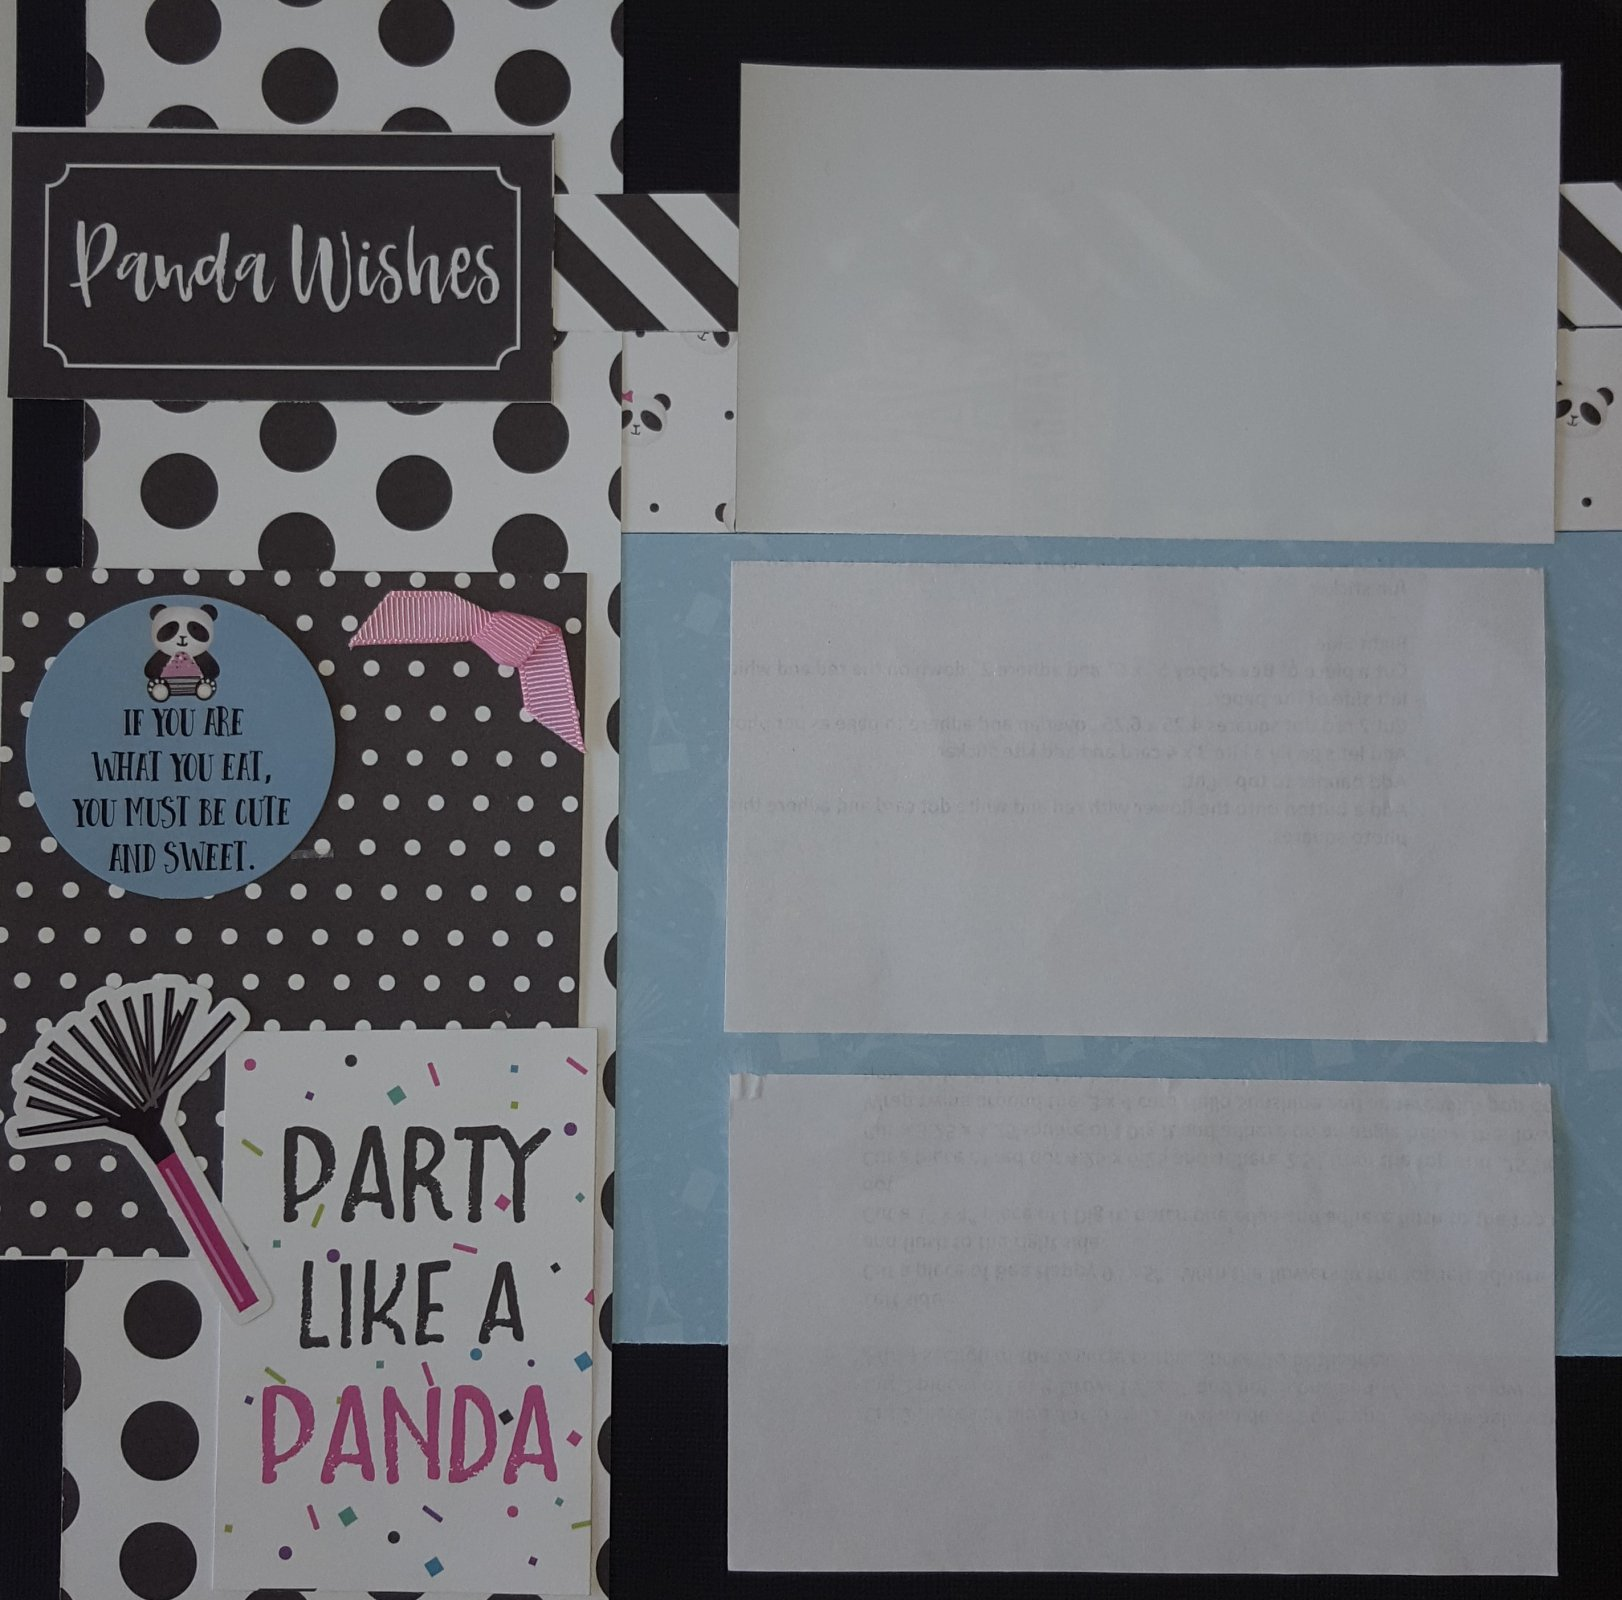 Cake Panda Party 2 x 2 page layout